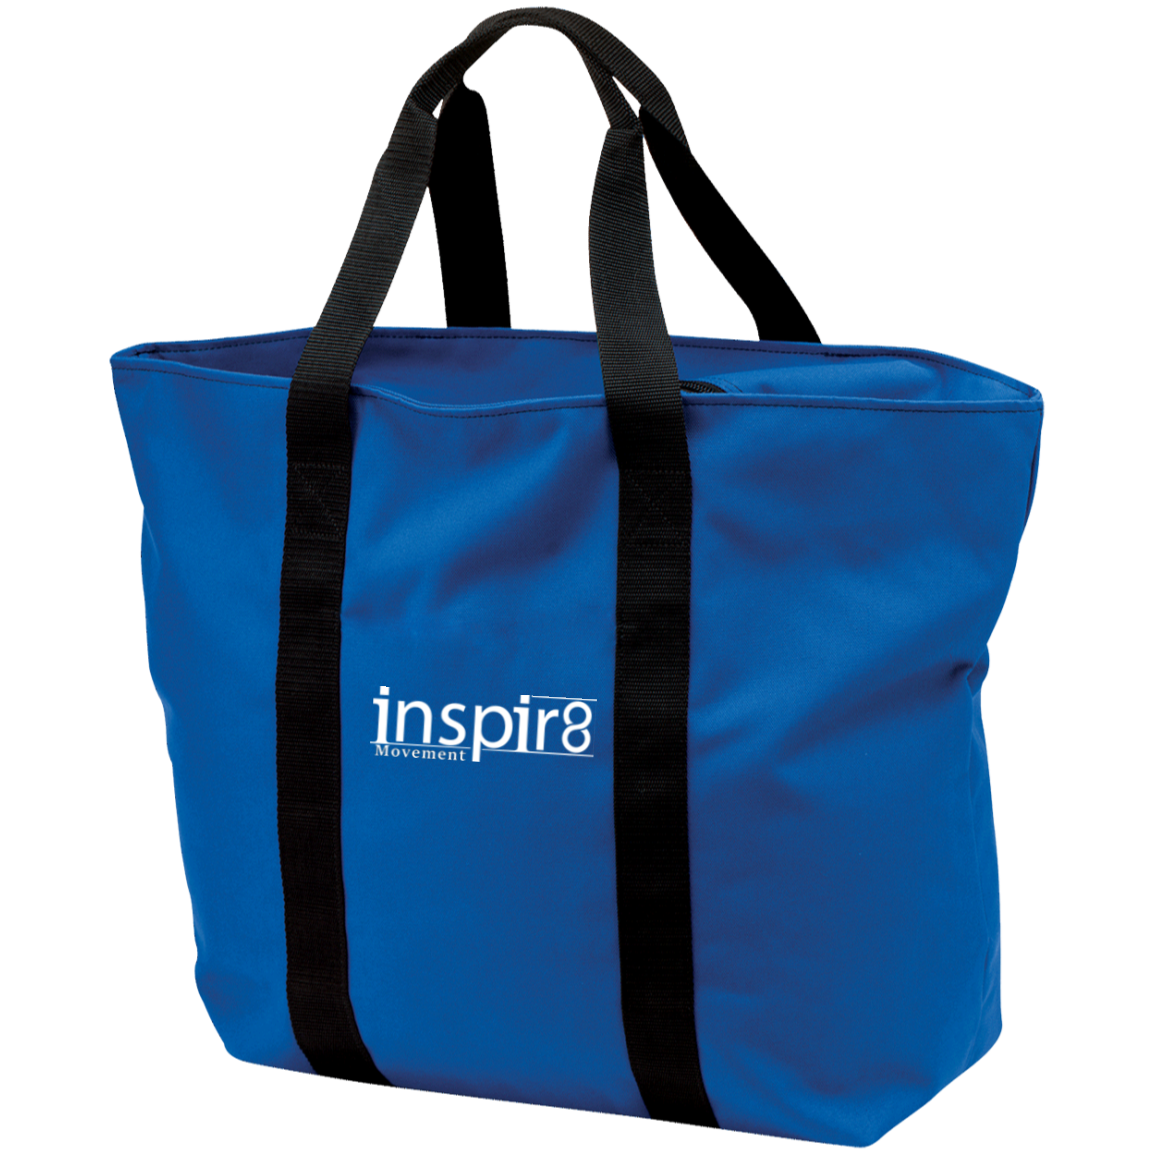 inspir8 Movement All Purpose Tote Bag